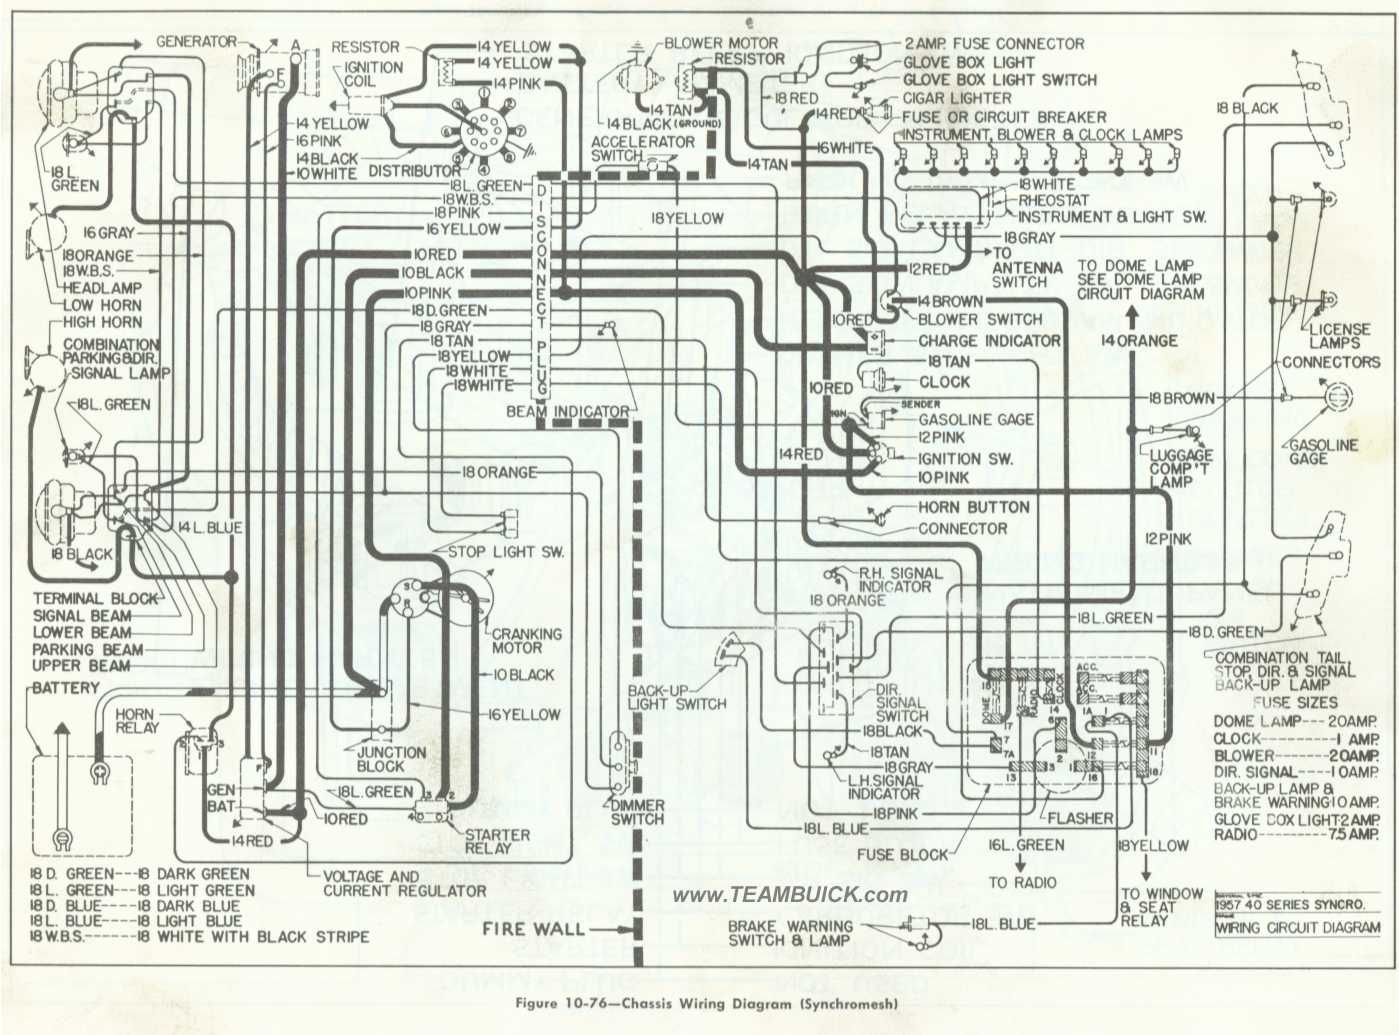 hight resolution of 1957 buick chassis wiring diagram synchromesh rh teambuick com ford f53 chassis wiring diagram ford f53